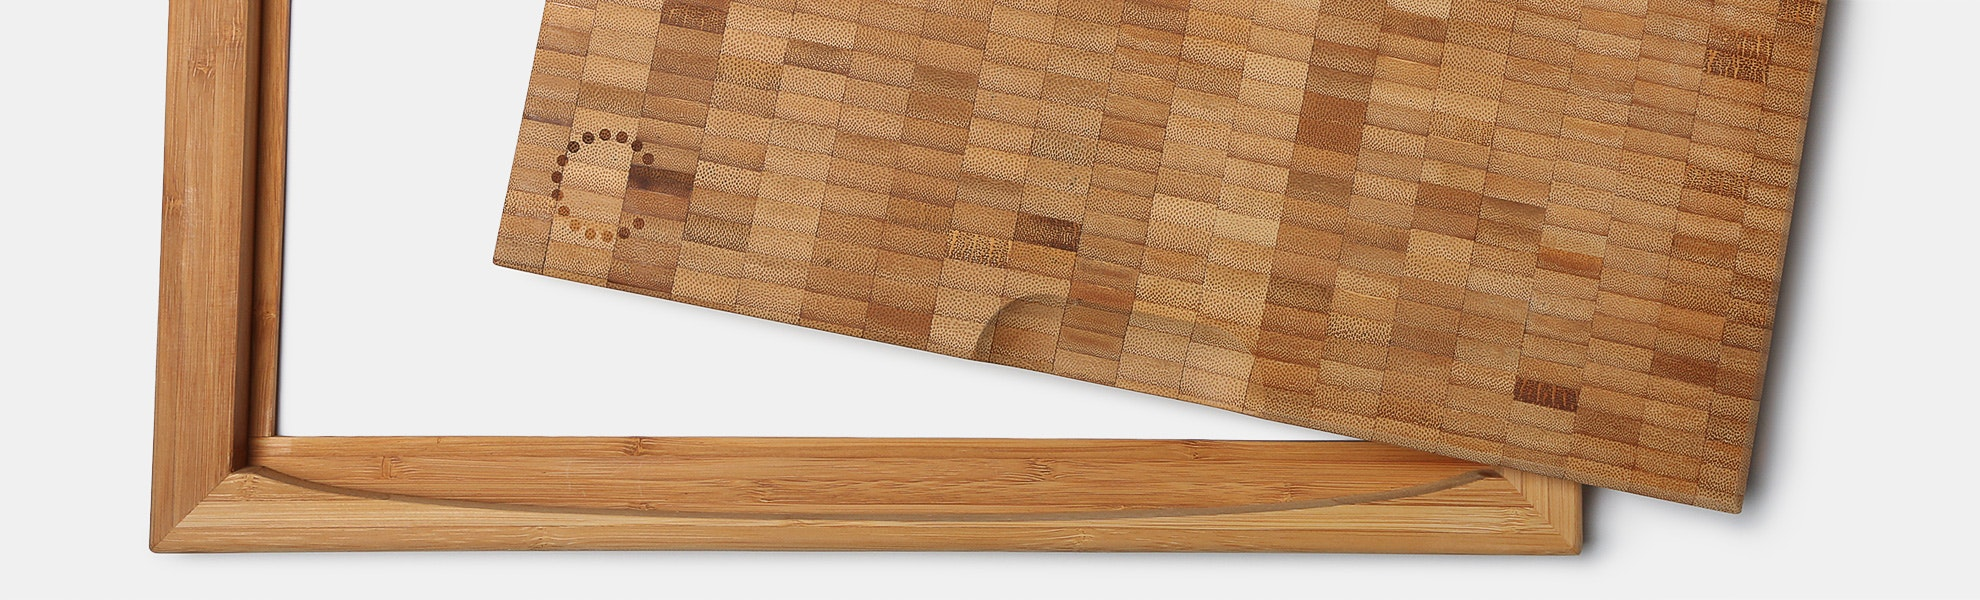 curtis stone flipper bamboo cutting board